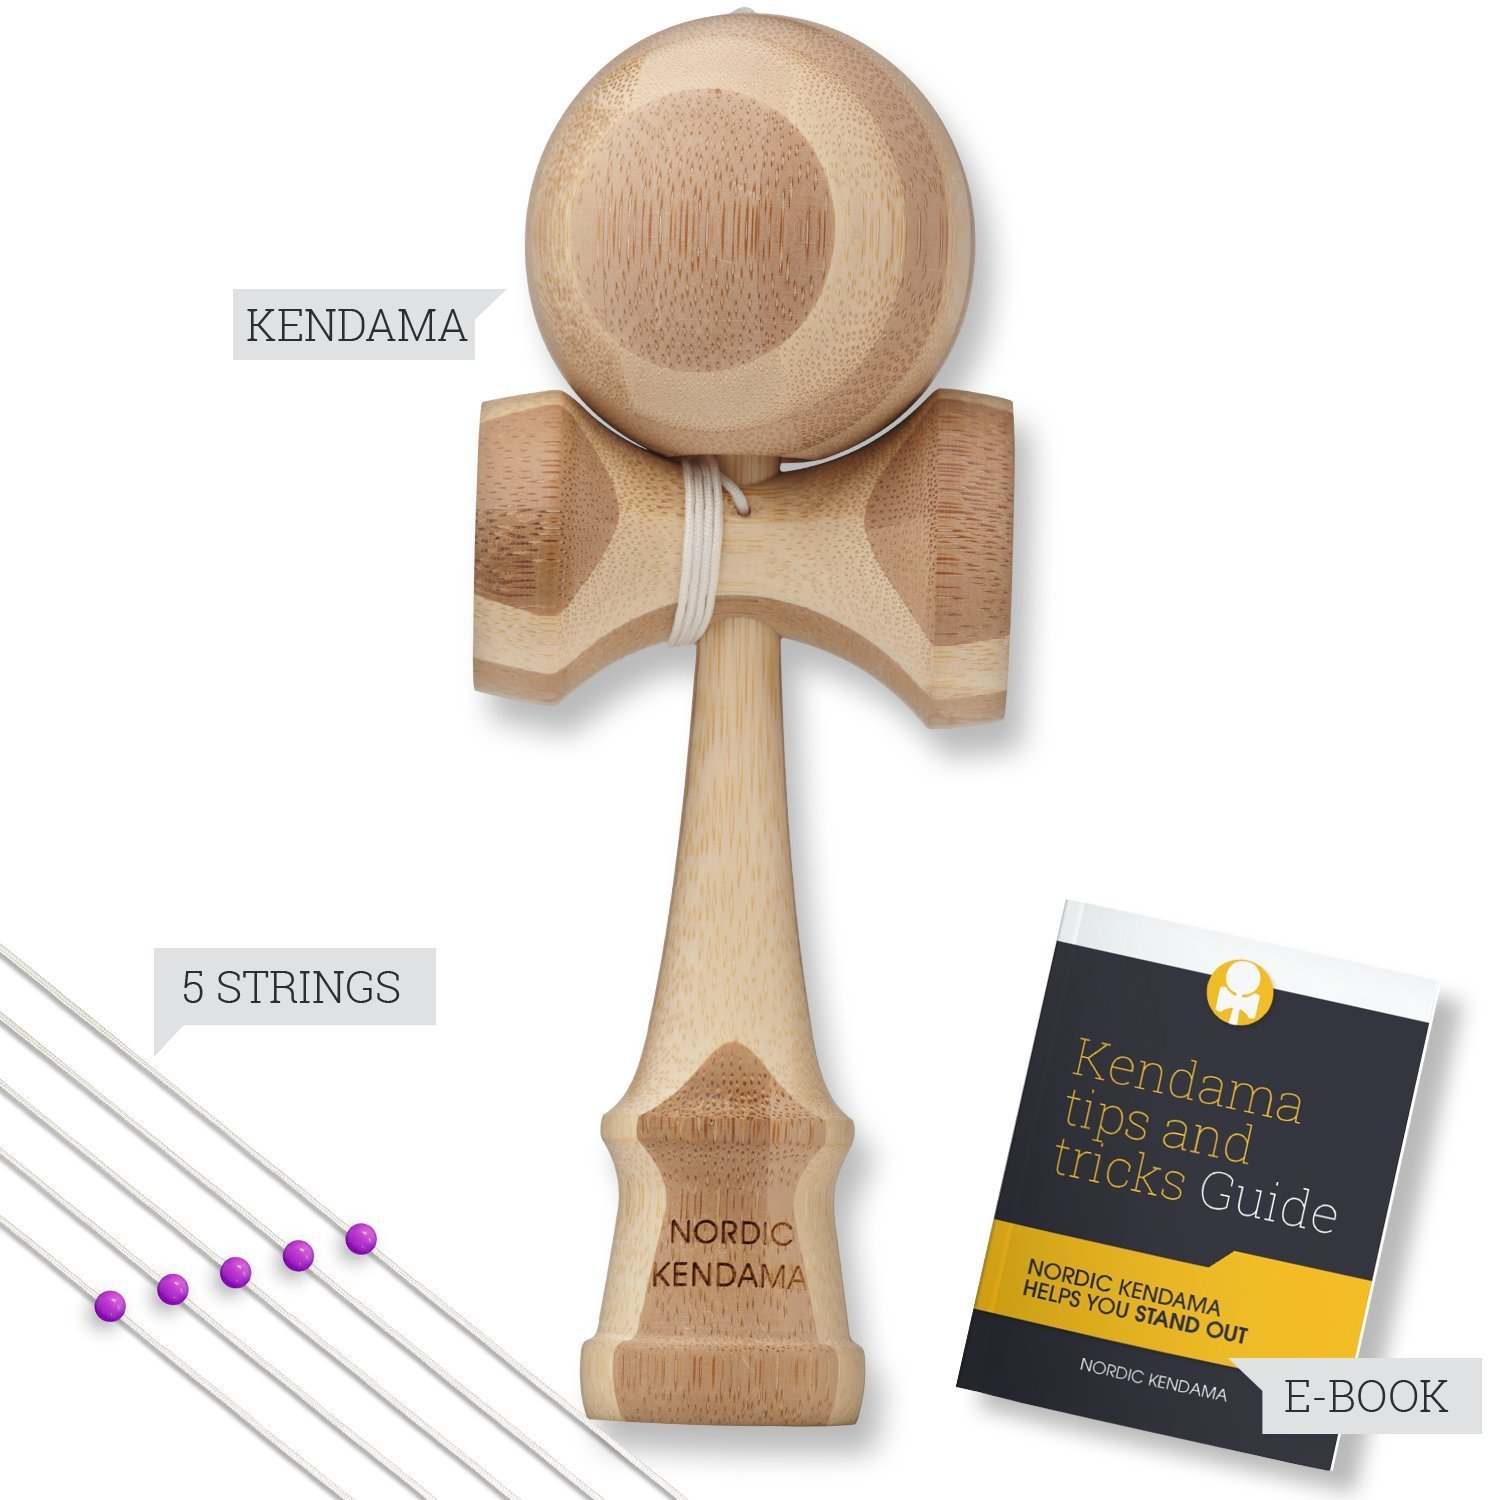 Nordic Kendama Wooden Toy